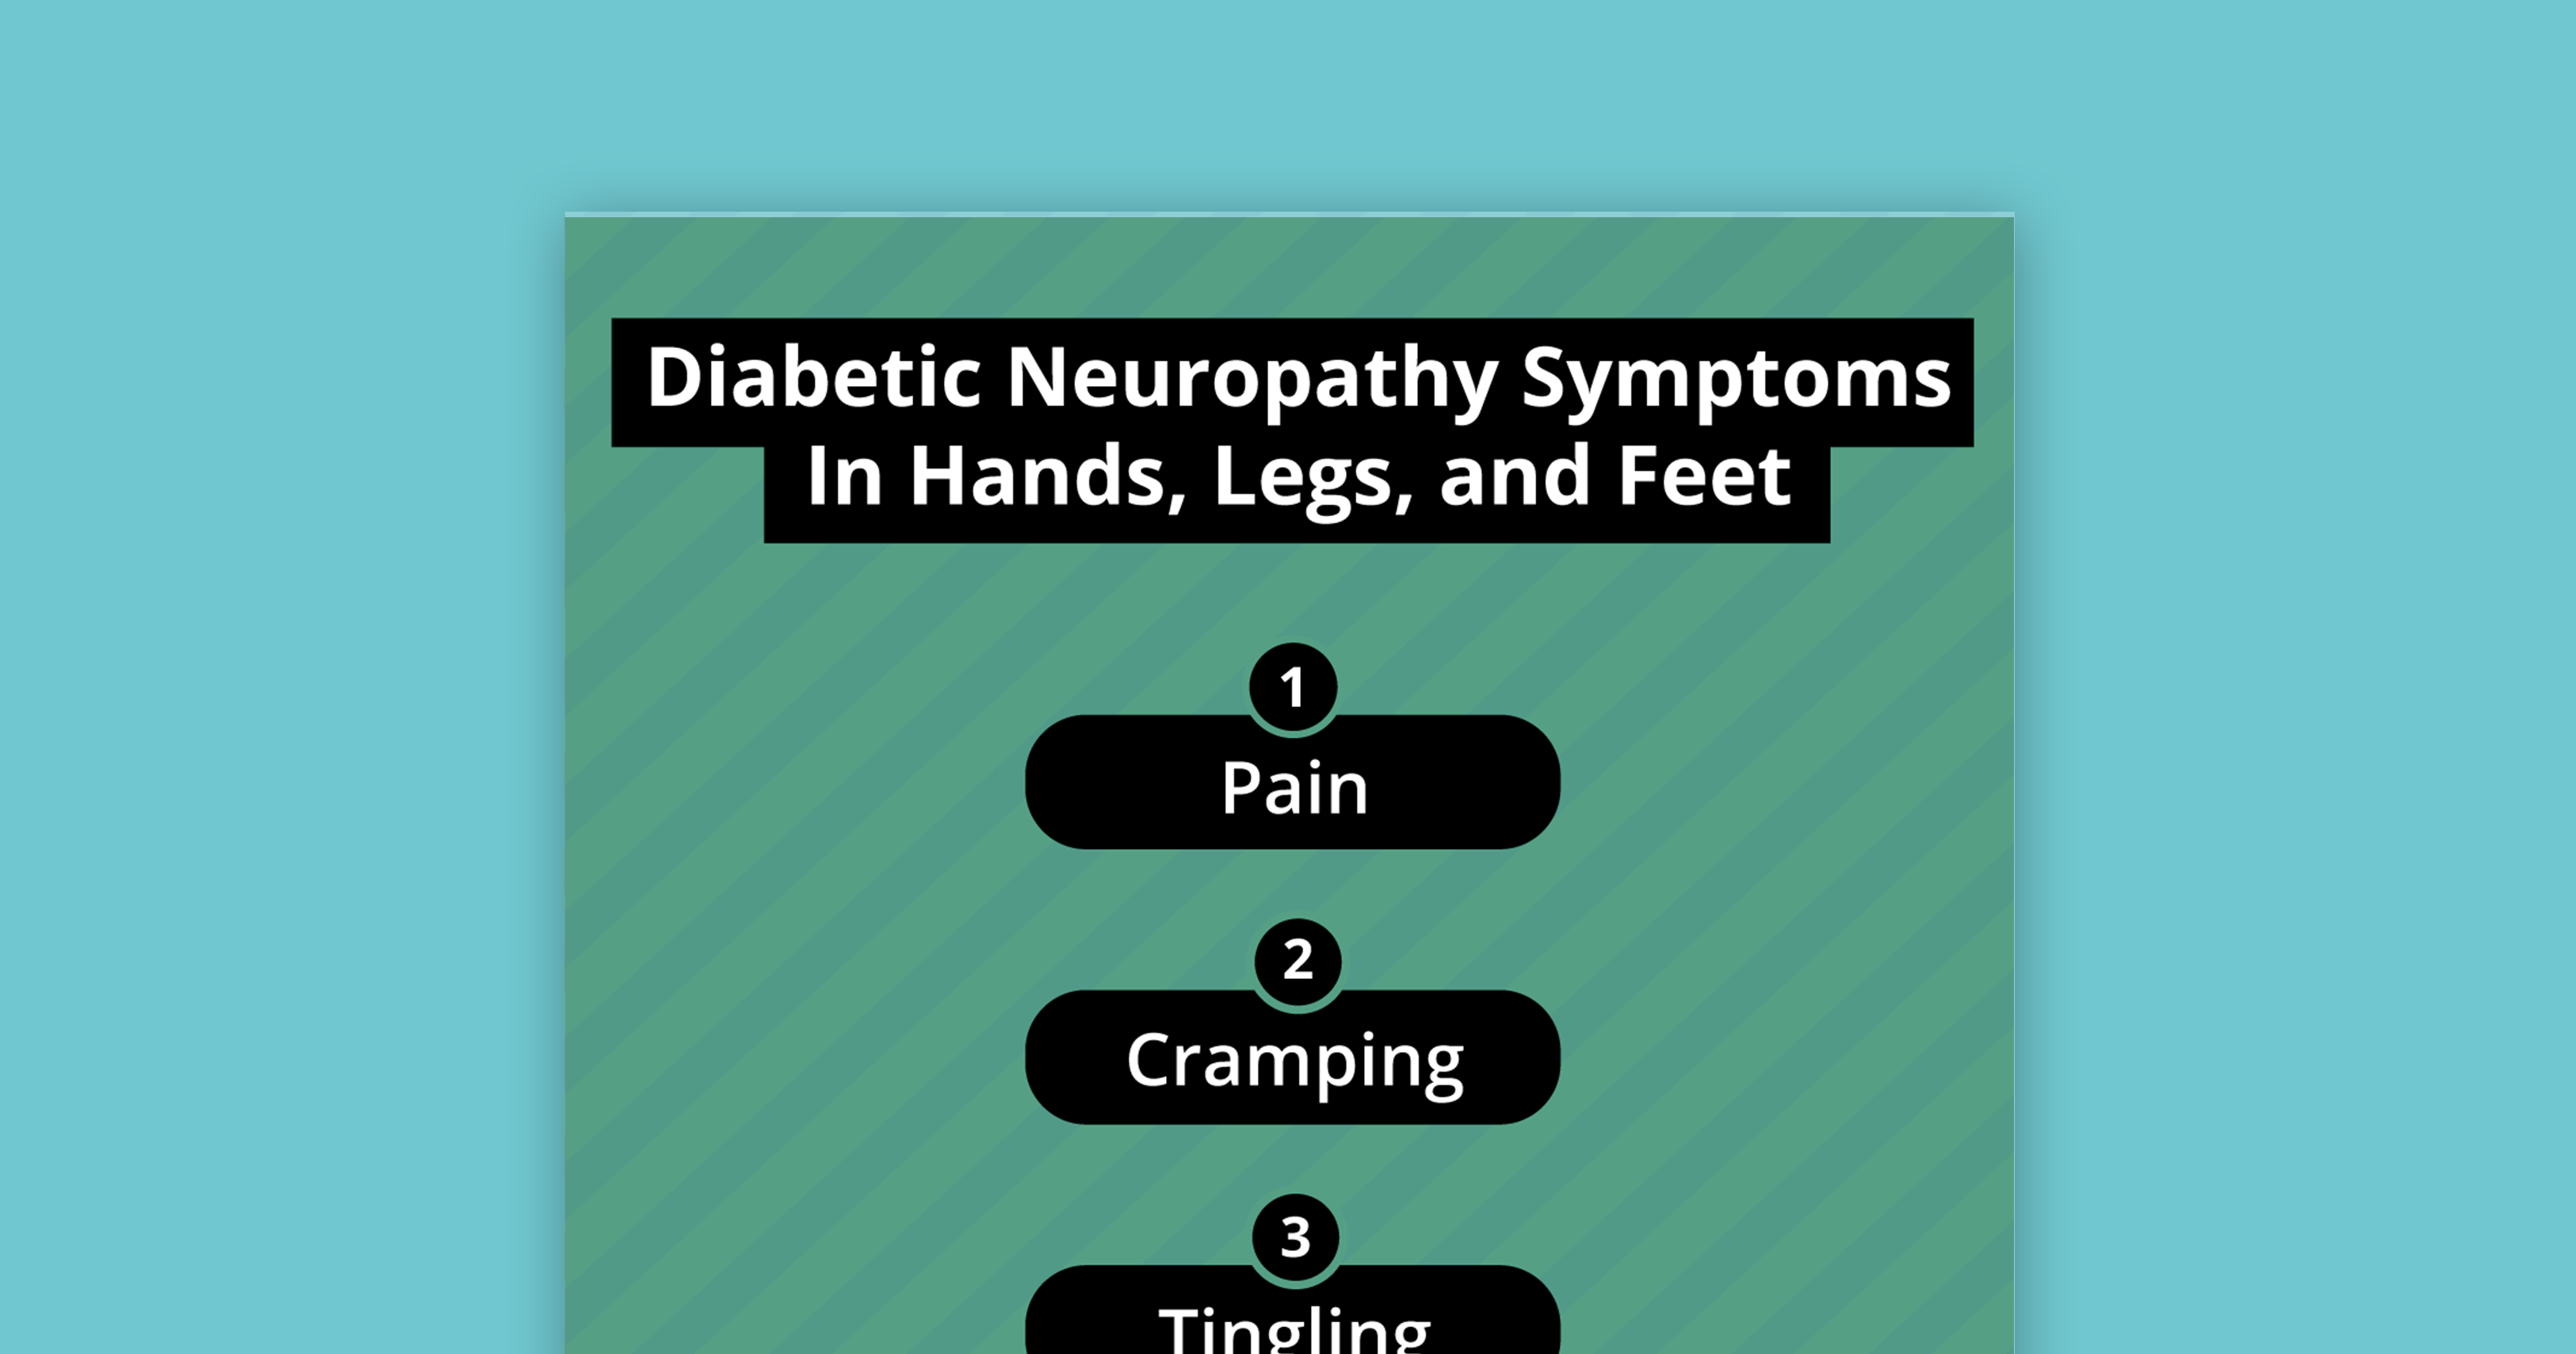 diabetic peripheral neuropathy symptoms